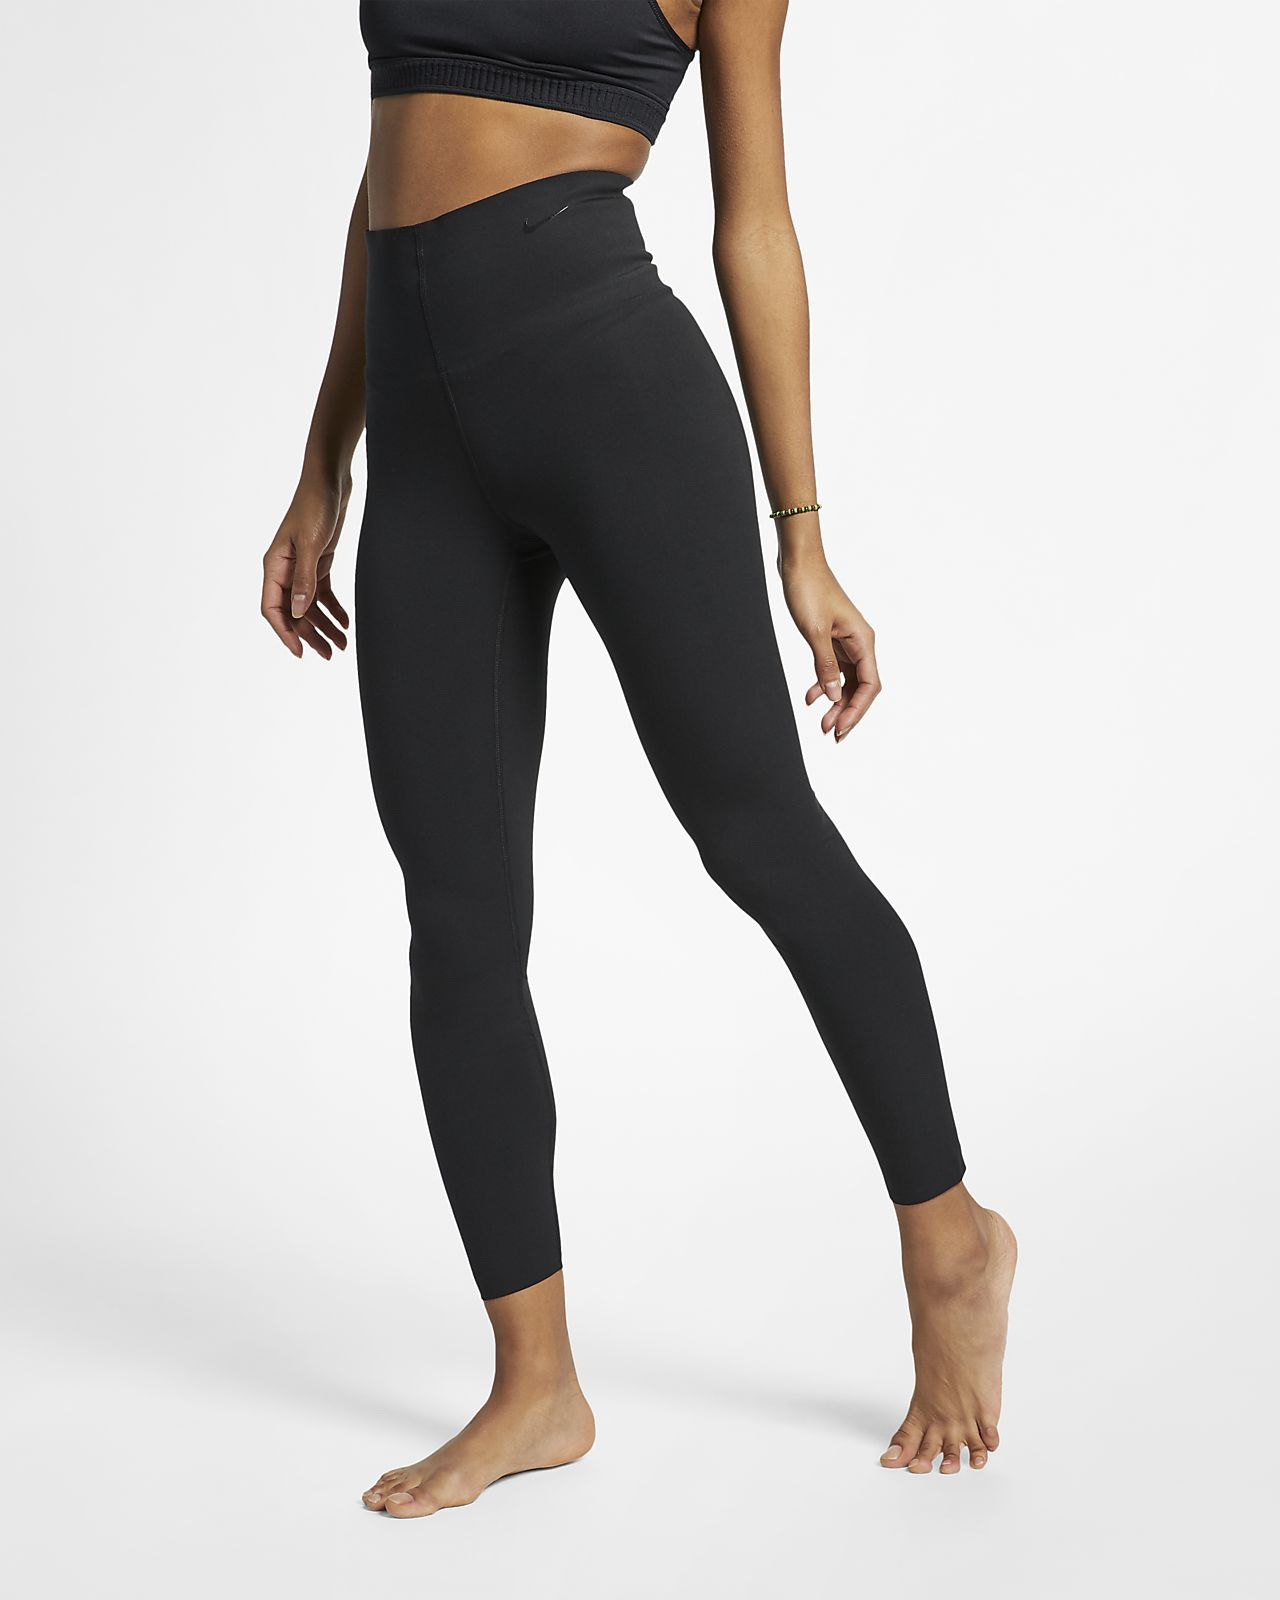 Tights a 7/8 Nike Sculpt Luxe - Donna